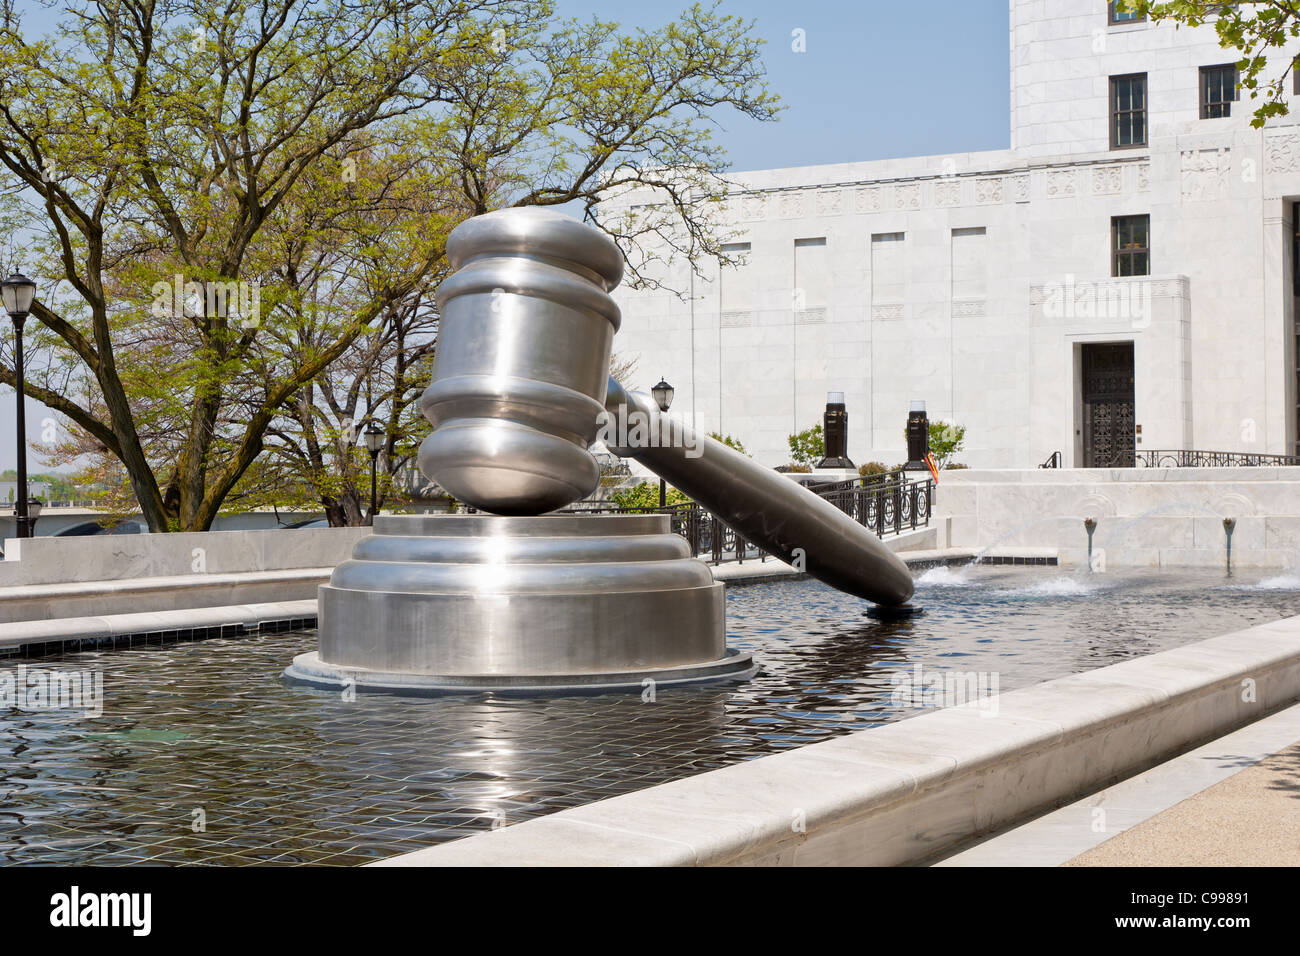 The Gavel, a stainless steel sculpture in the reflecting pool of the Ohio Judicial Center in Columbus, Ohio. - Stock Image